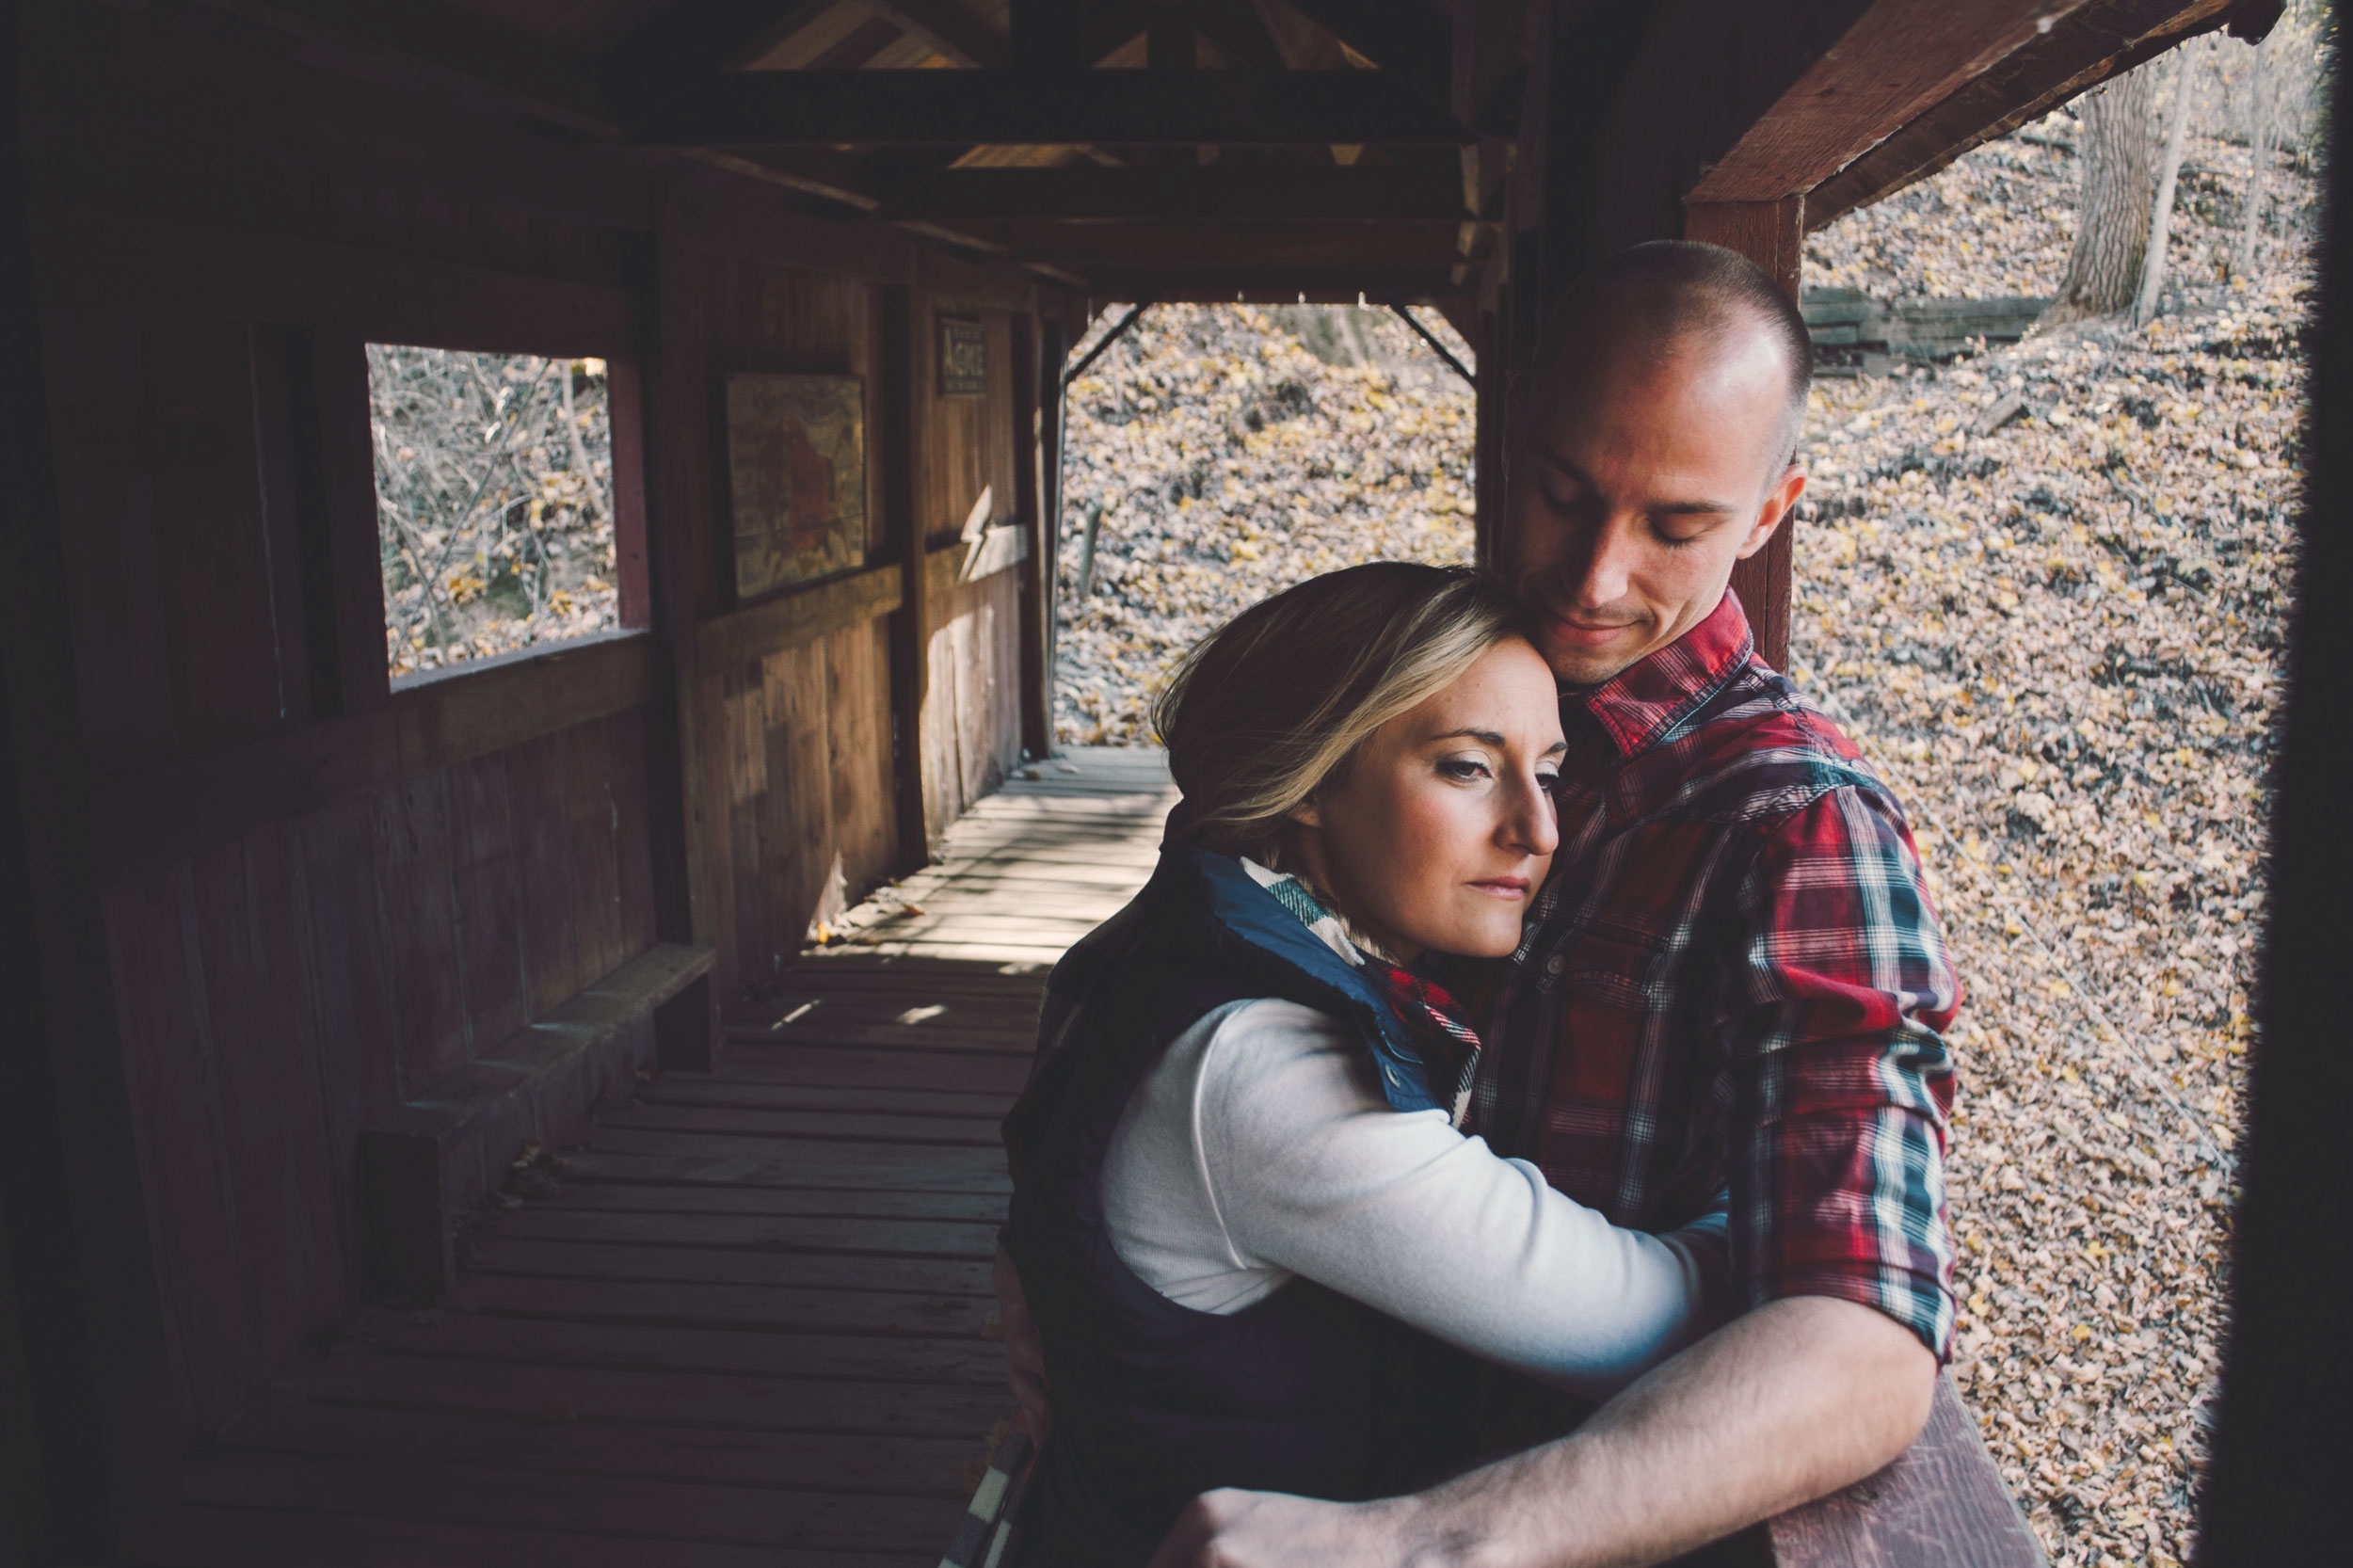 Stable Instability in Relationships: An Interview with Amir Levine Part II